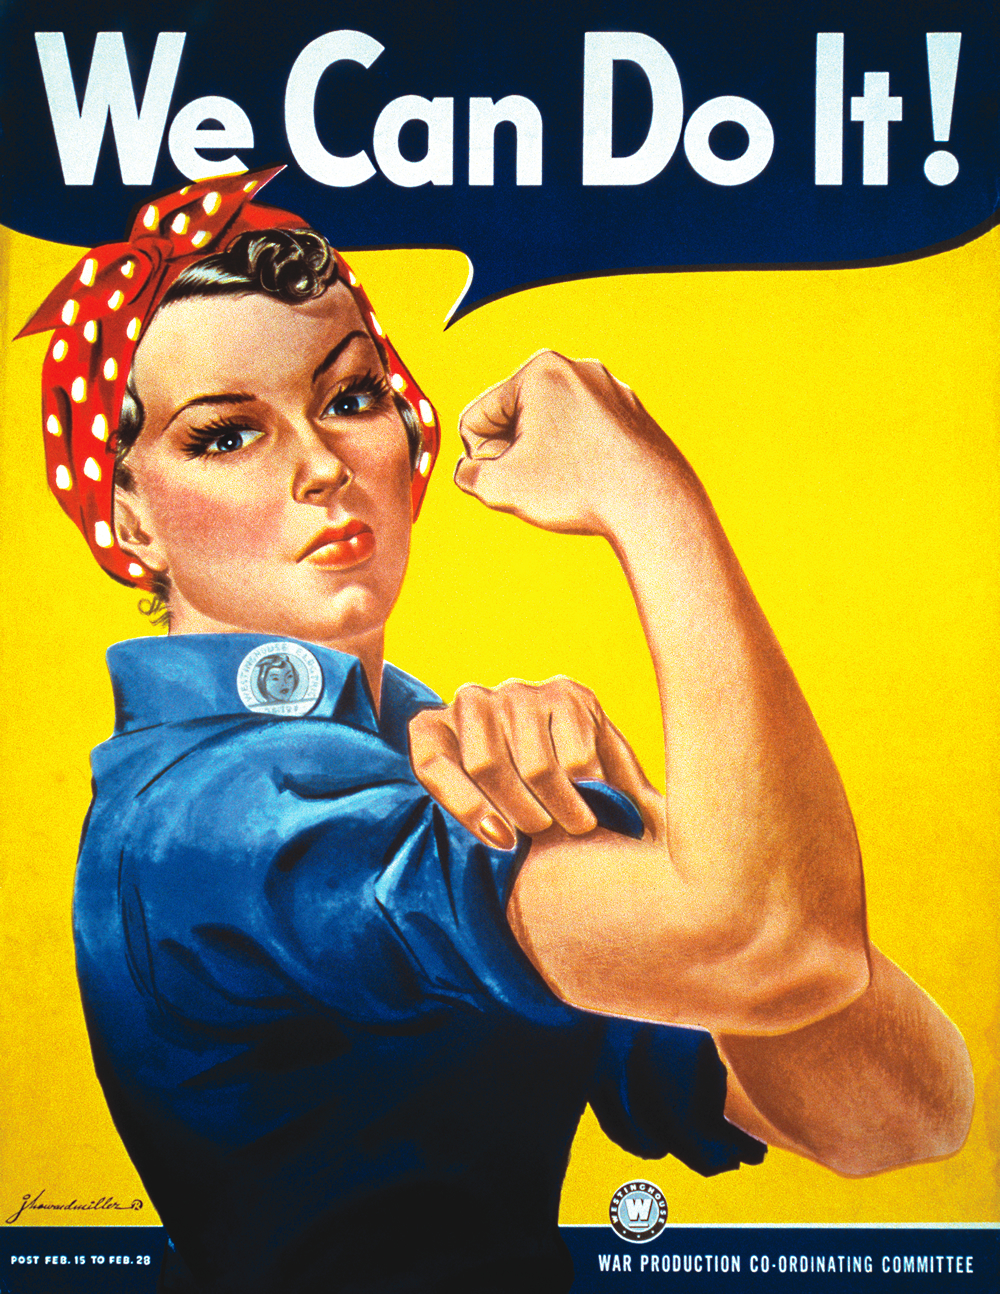 http://upload.wikimedia.org/wikipedia/commons/1/12/We_Can_Do_It!.jpg